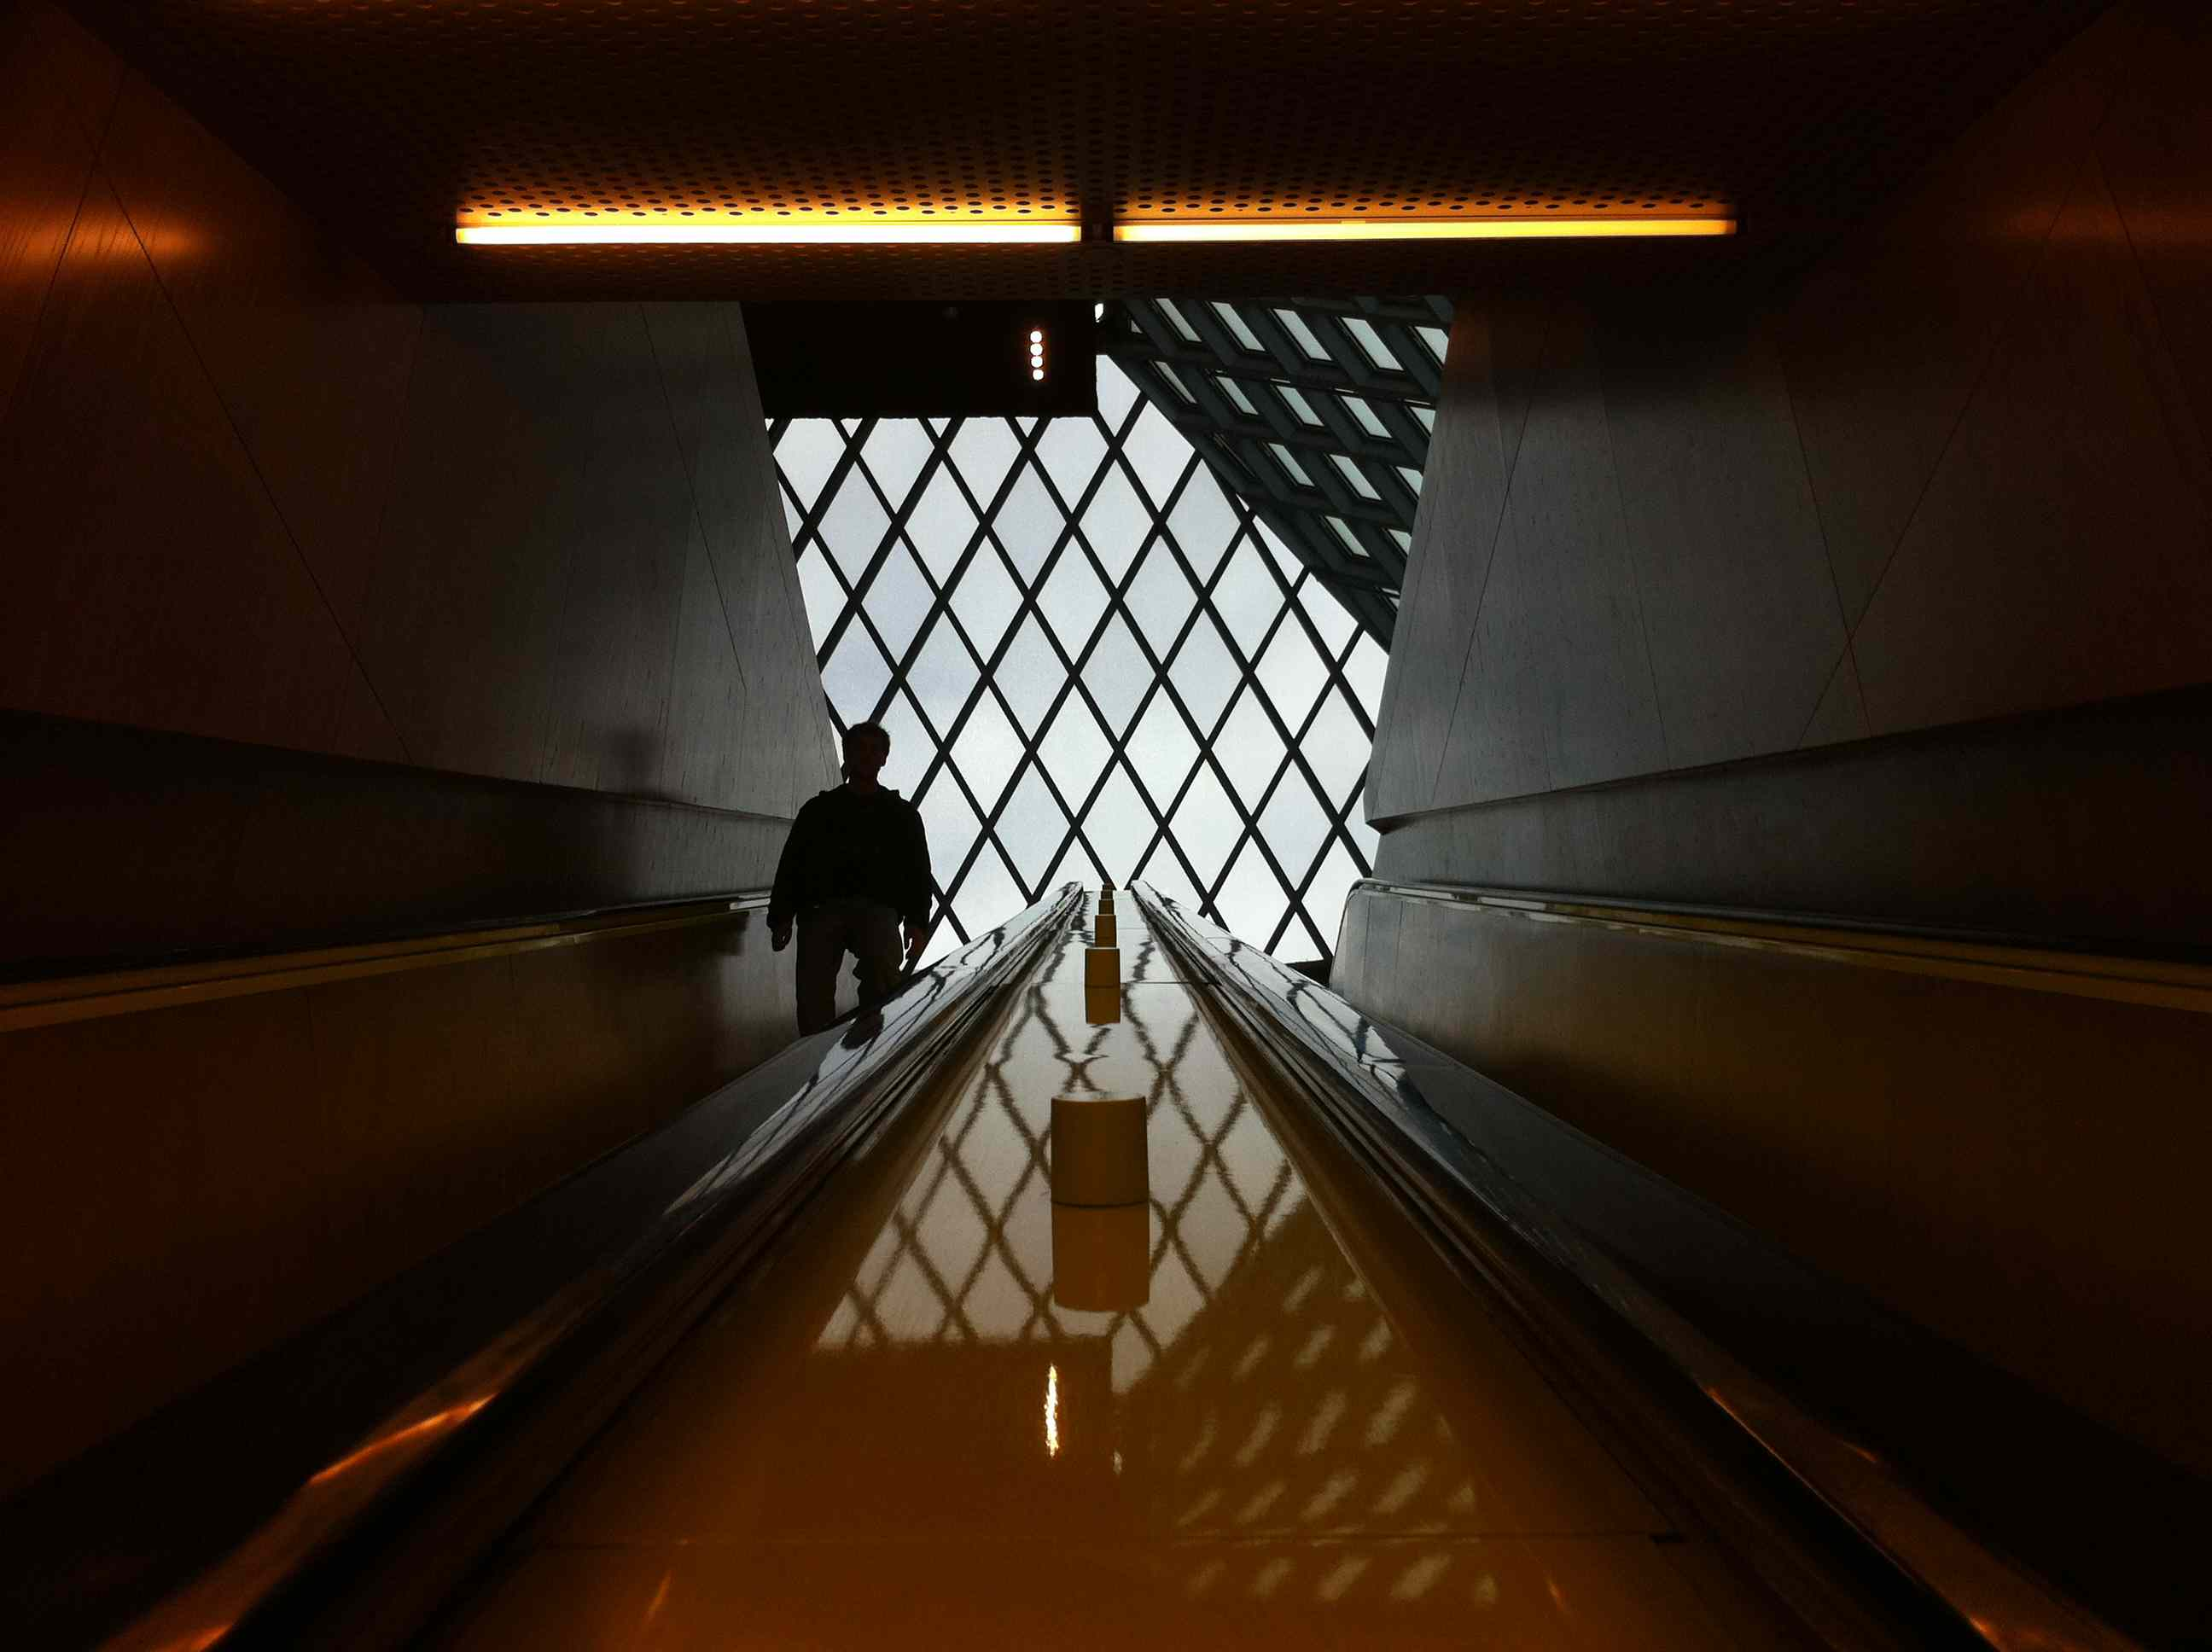 Man going down an escalator in a dark hallway